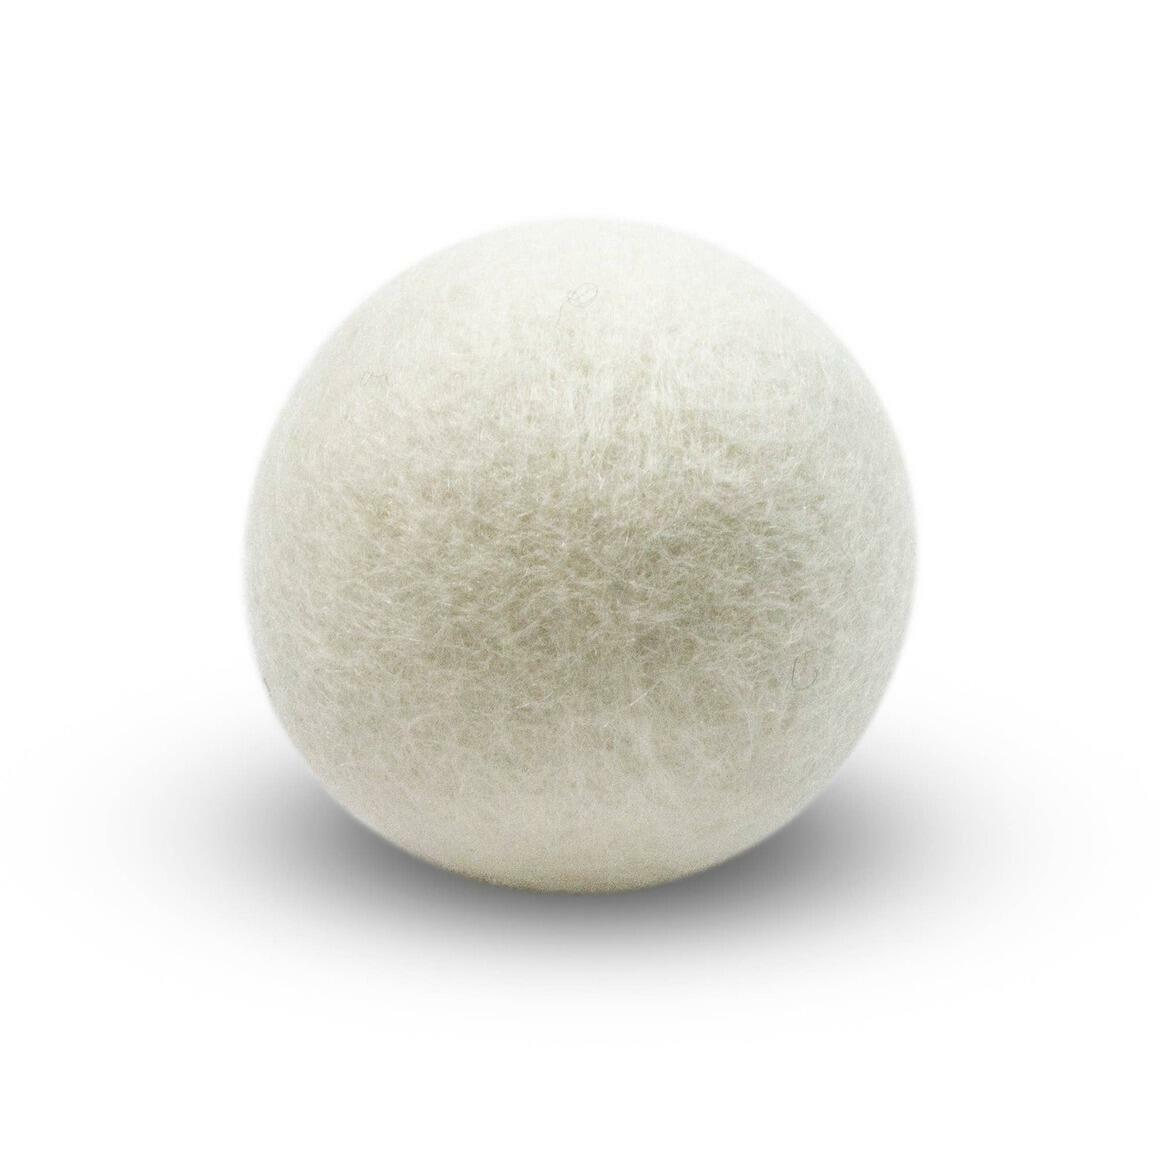 Single Eco Dryer Ball - All Colors and Designs - Mix'n'Match   Trada Marketplace